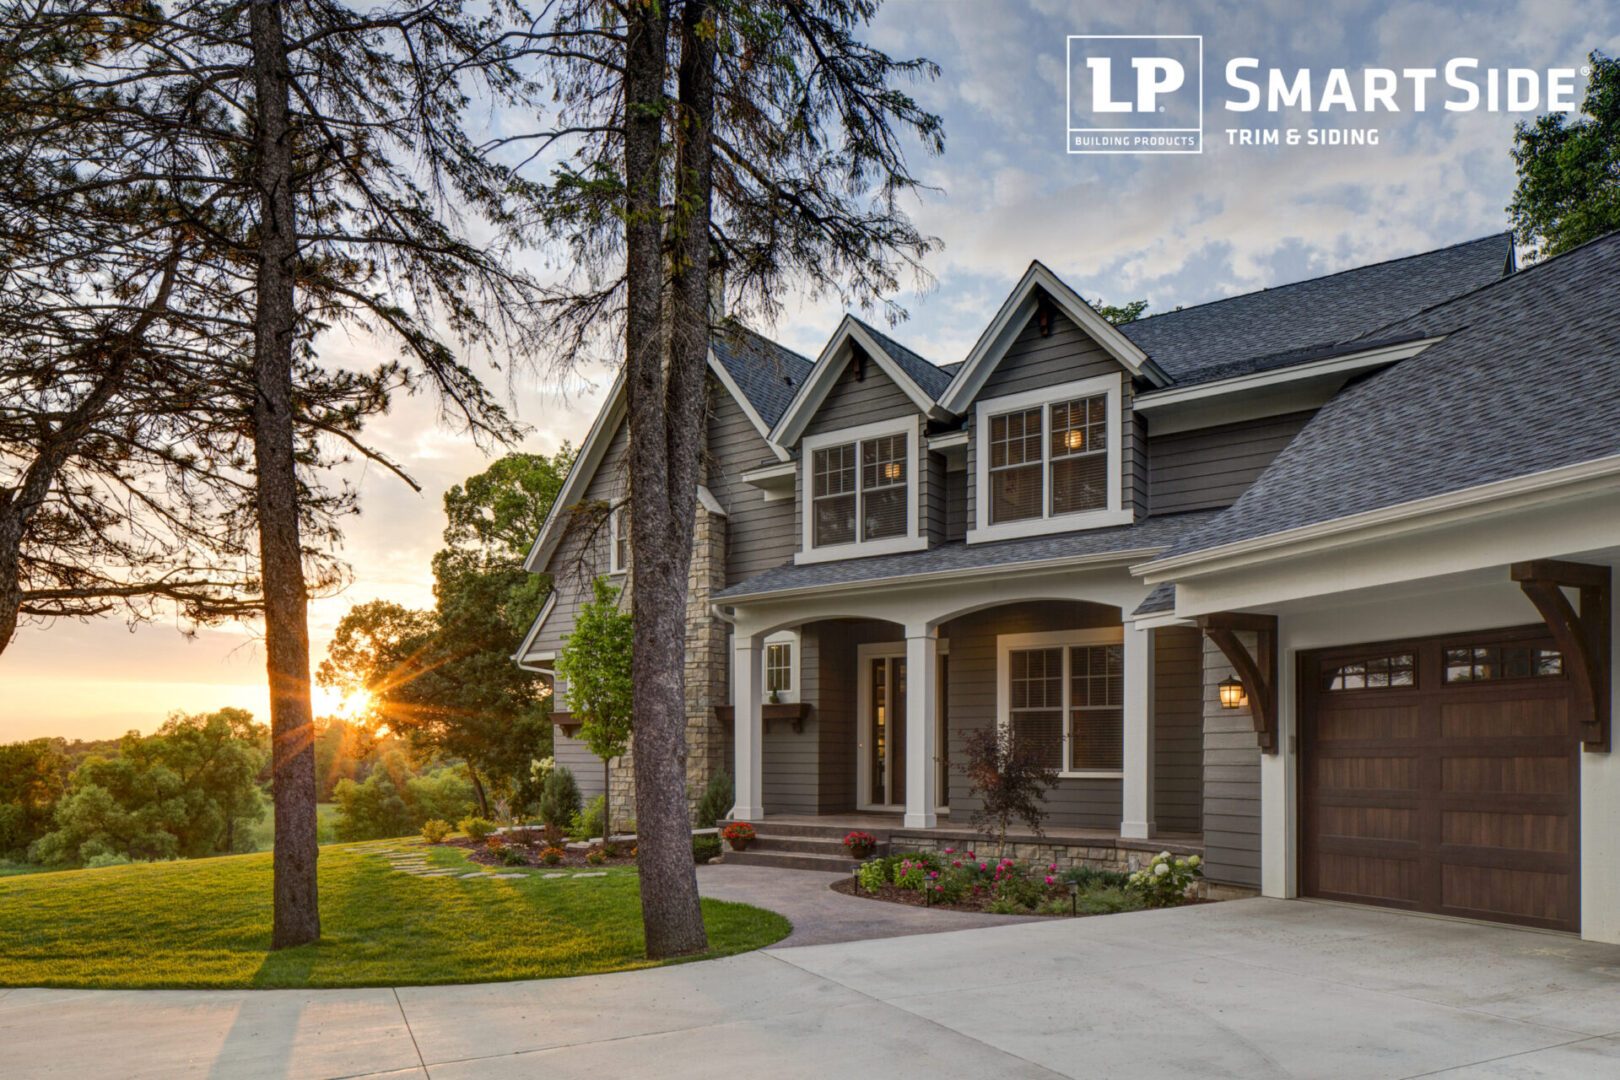 LP_Assets_HighRes High res - grey house with white trim, large fir trees, sunset - DOWNLOAD OR SHARE